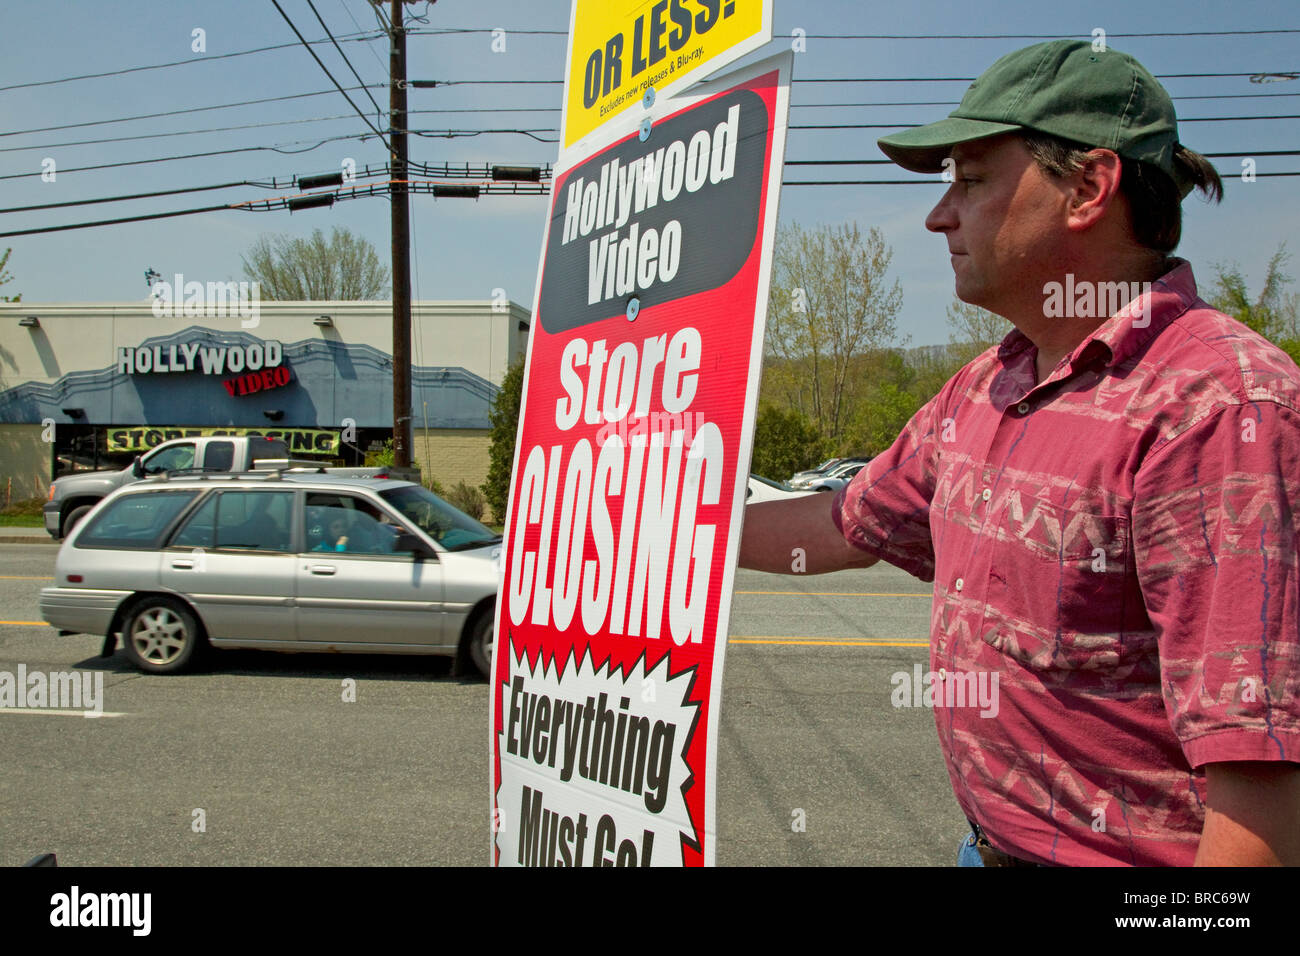 Man holds sign for Hollywood Video Store Closing Going Out of Business Sale - Stock Image